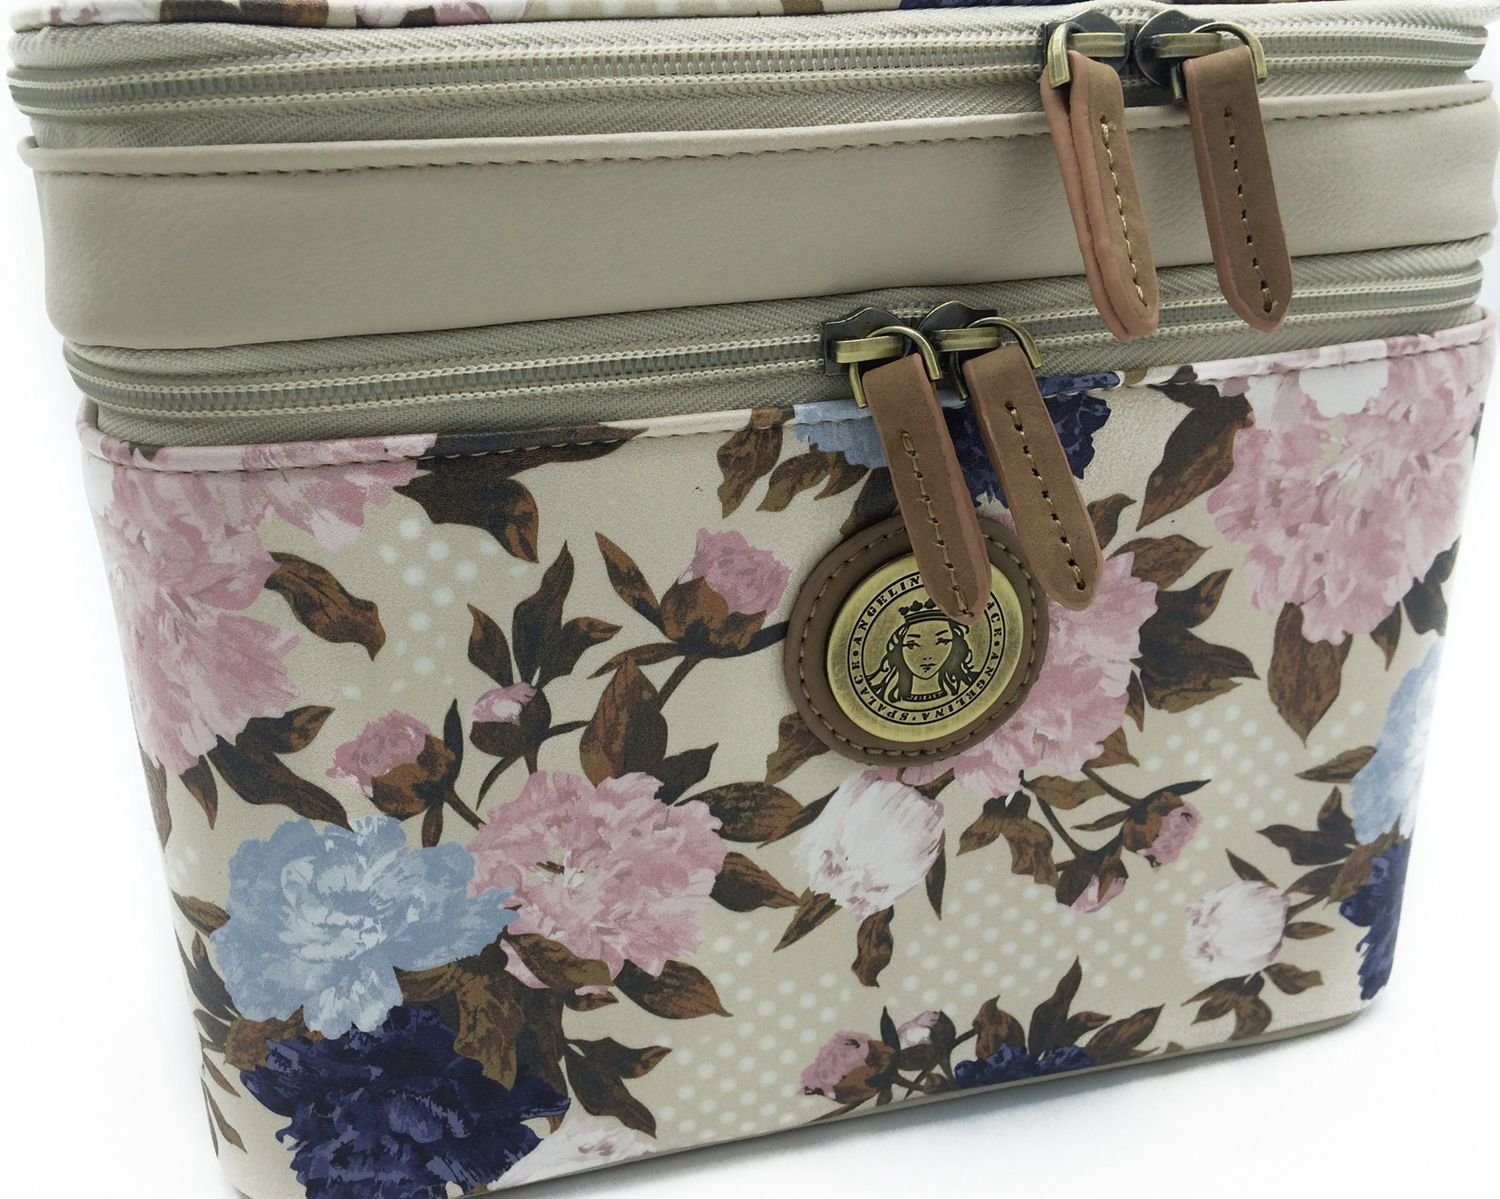 e2077b28411c Amazon.com: Angelina's Palace Kemi double layers Travel Beauty Case ...